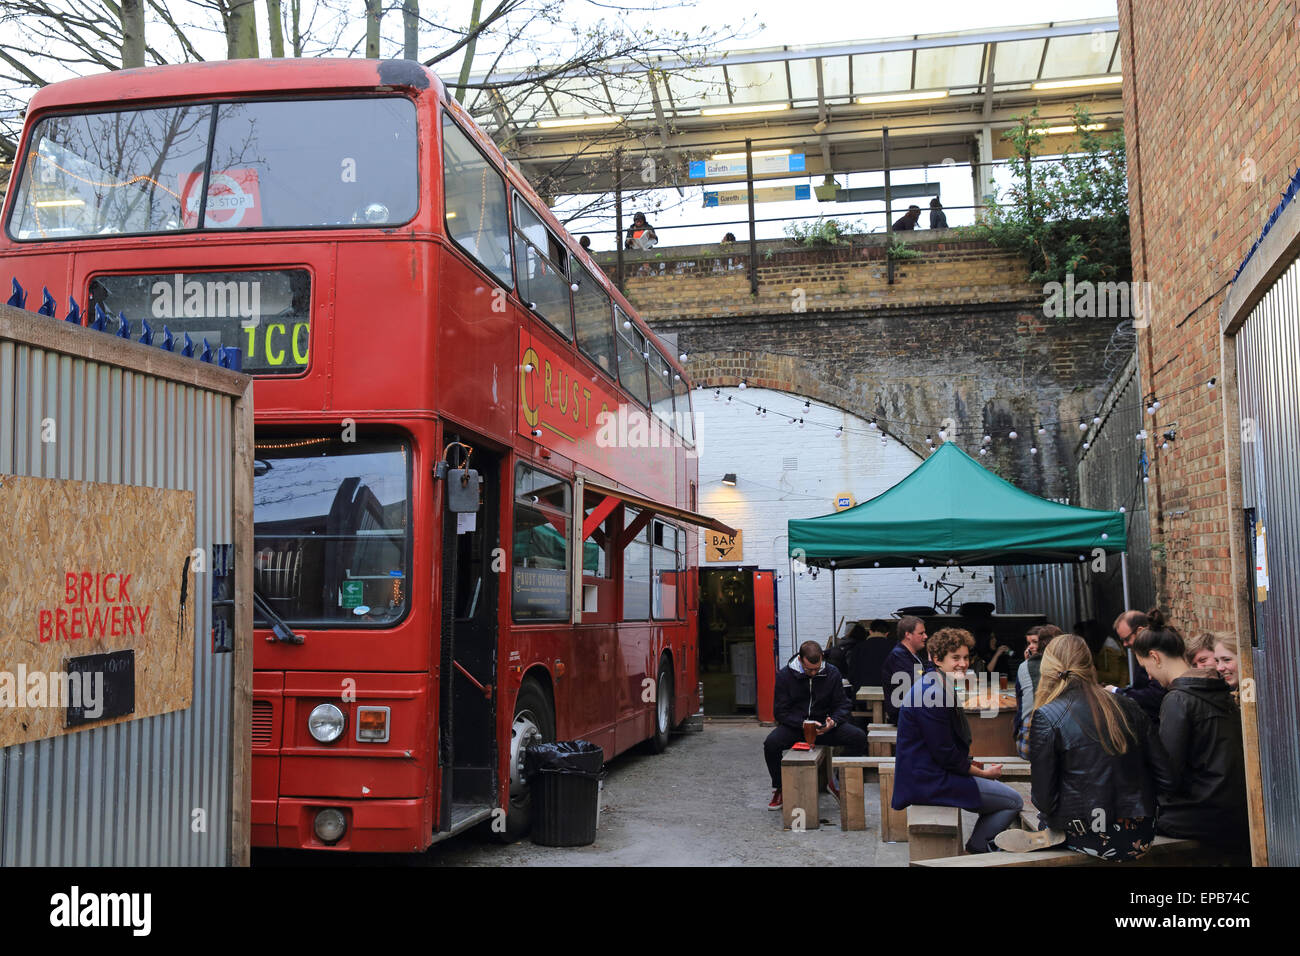 The quirky converted bus Crust Conductor pop up restaurant, in trendy Peckham Rye, in SE London, England, UK - Stock Image